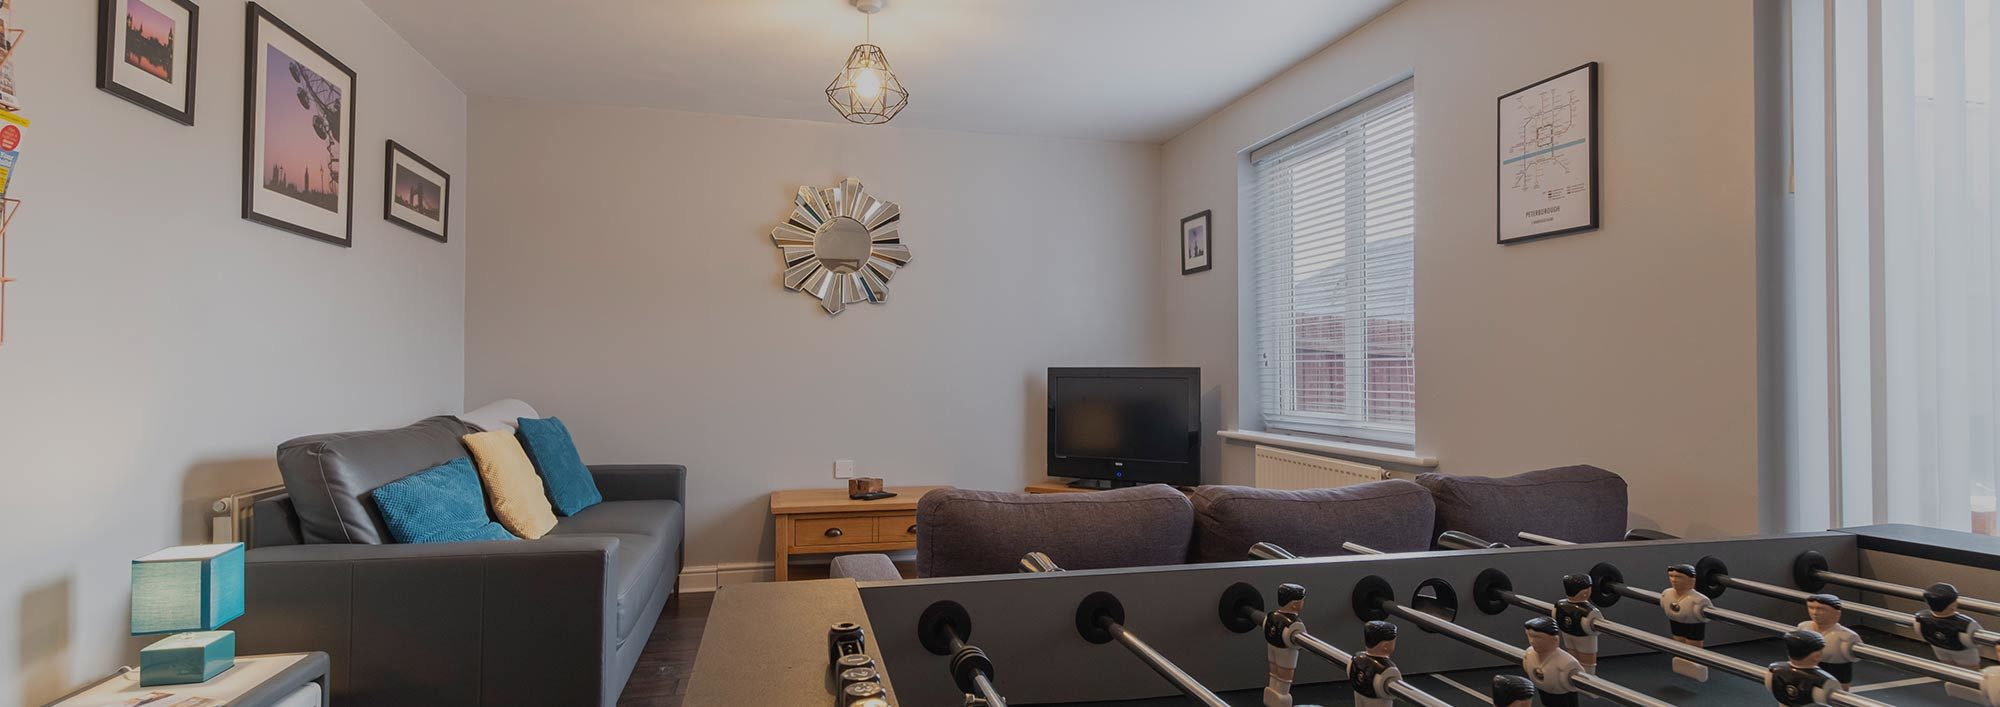 Serviced Accommodation in Peterborough